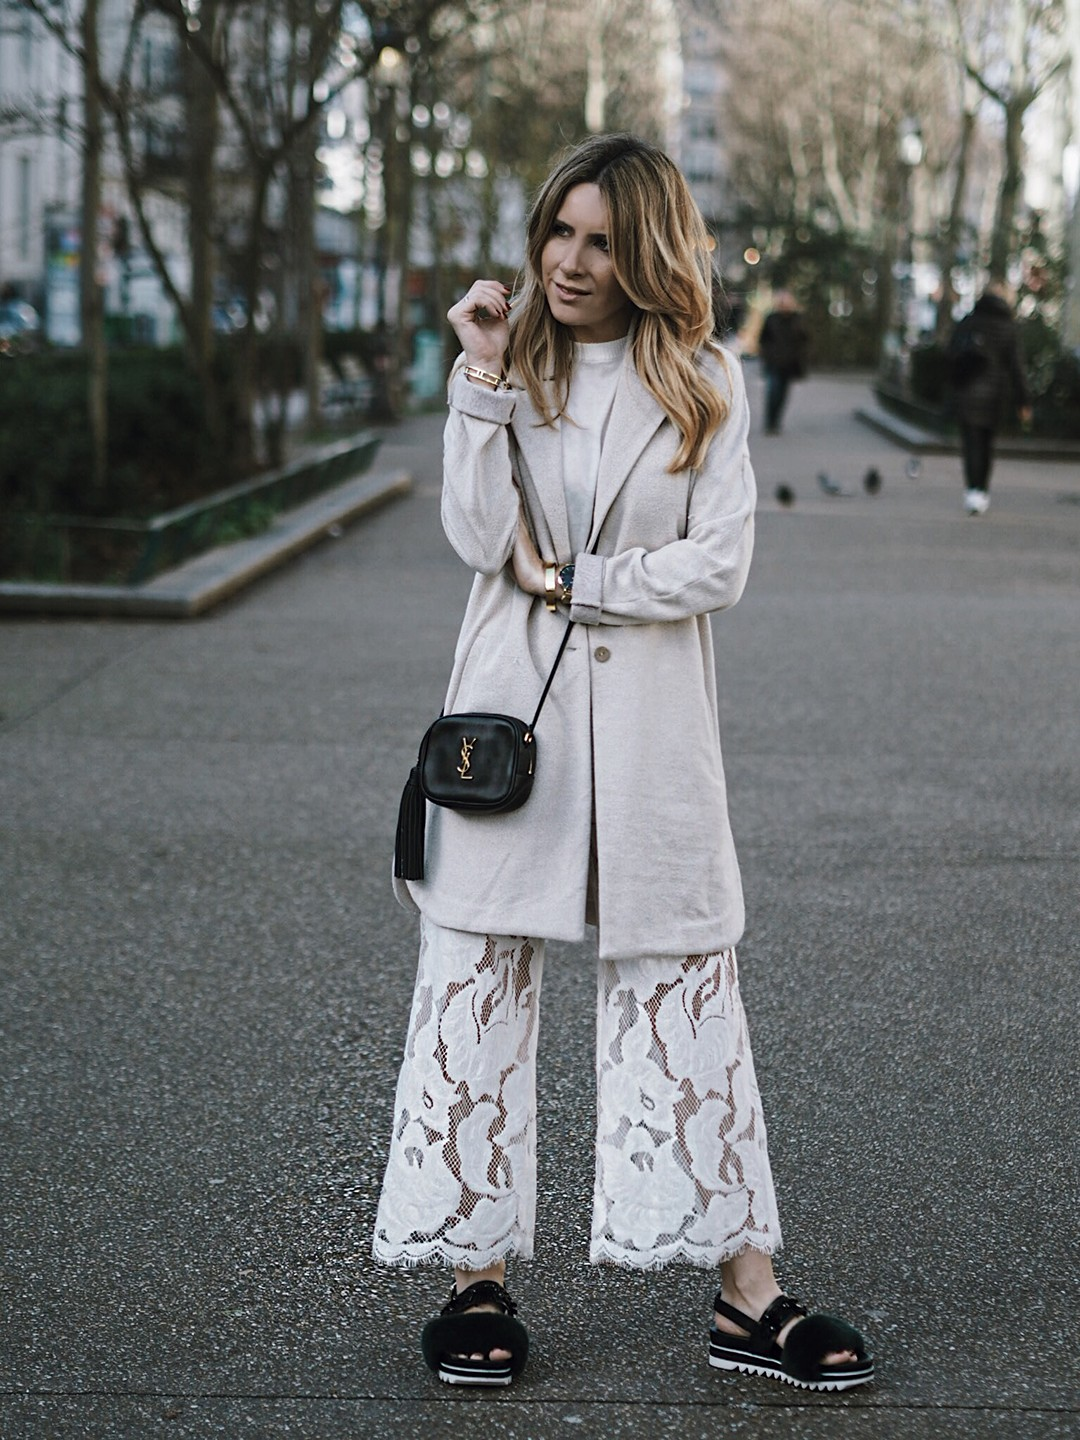 lace-pants-street-style-pfw-2017-monica-sors-fashion-blogger